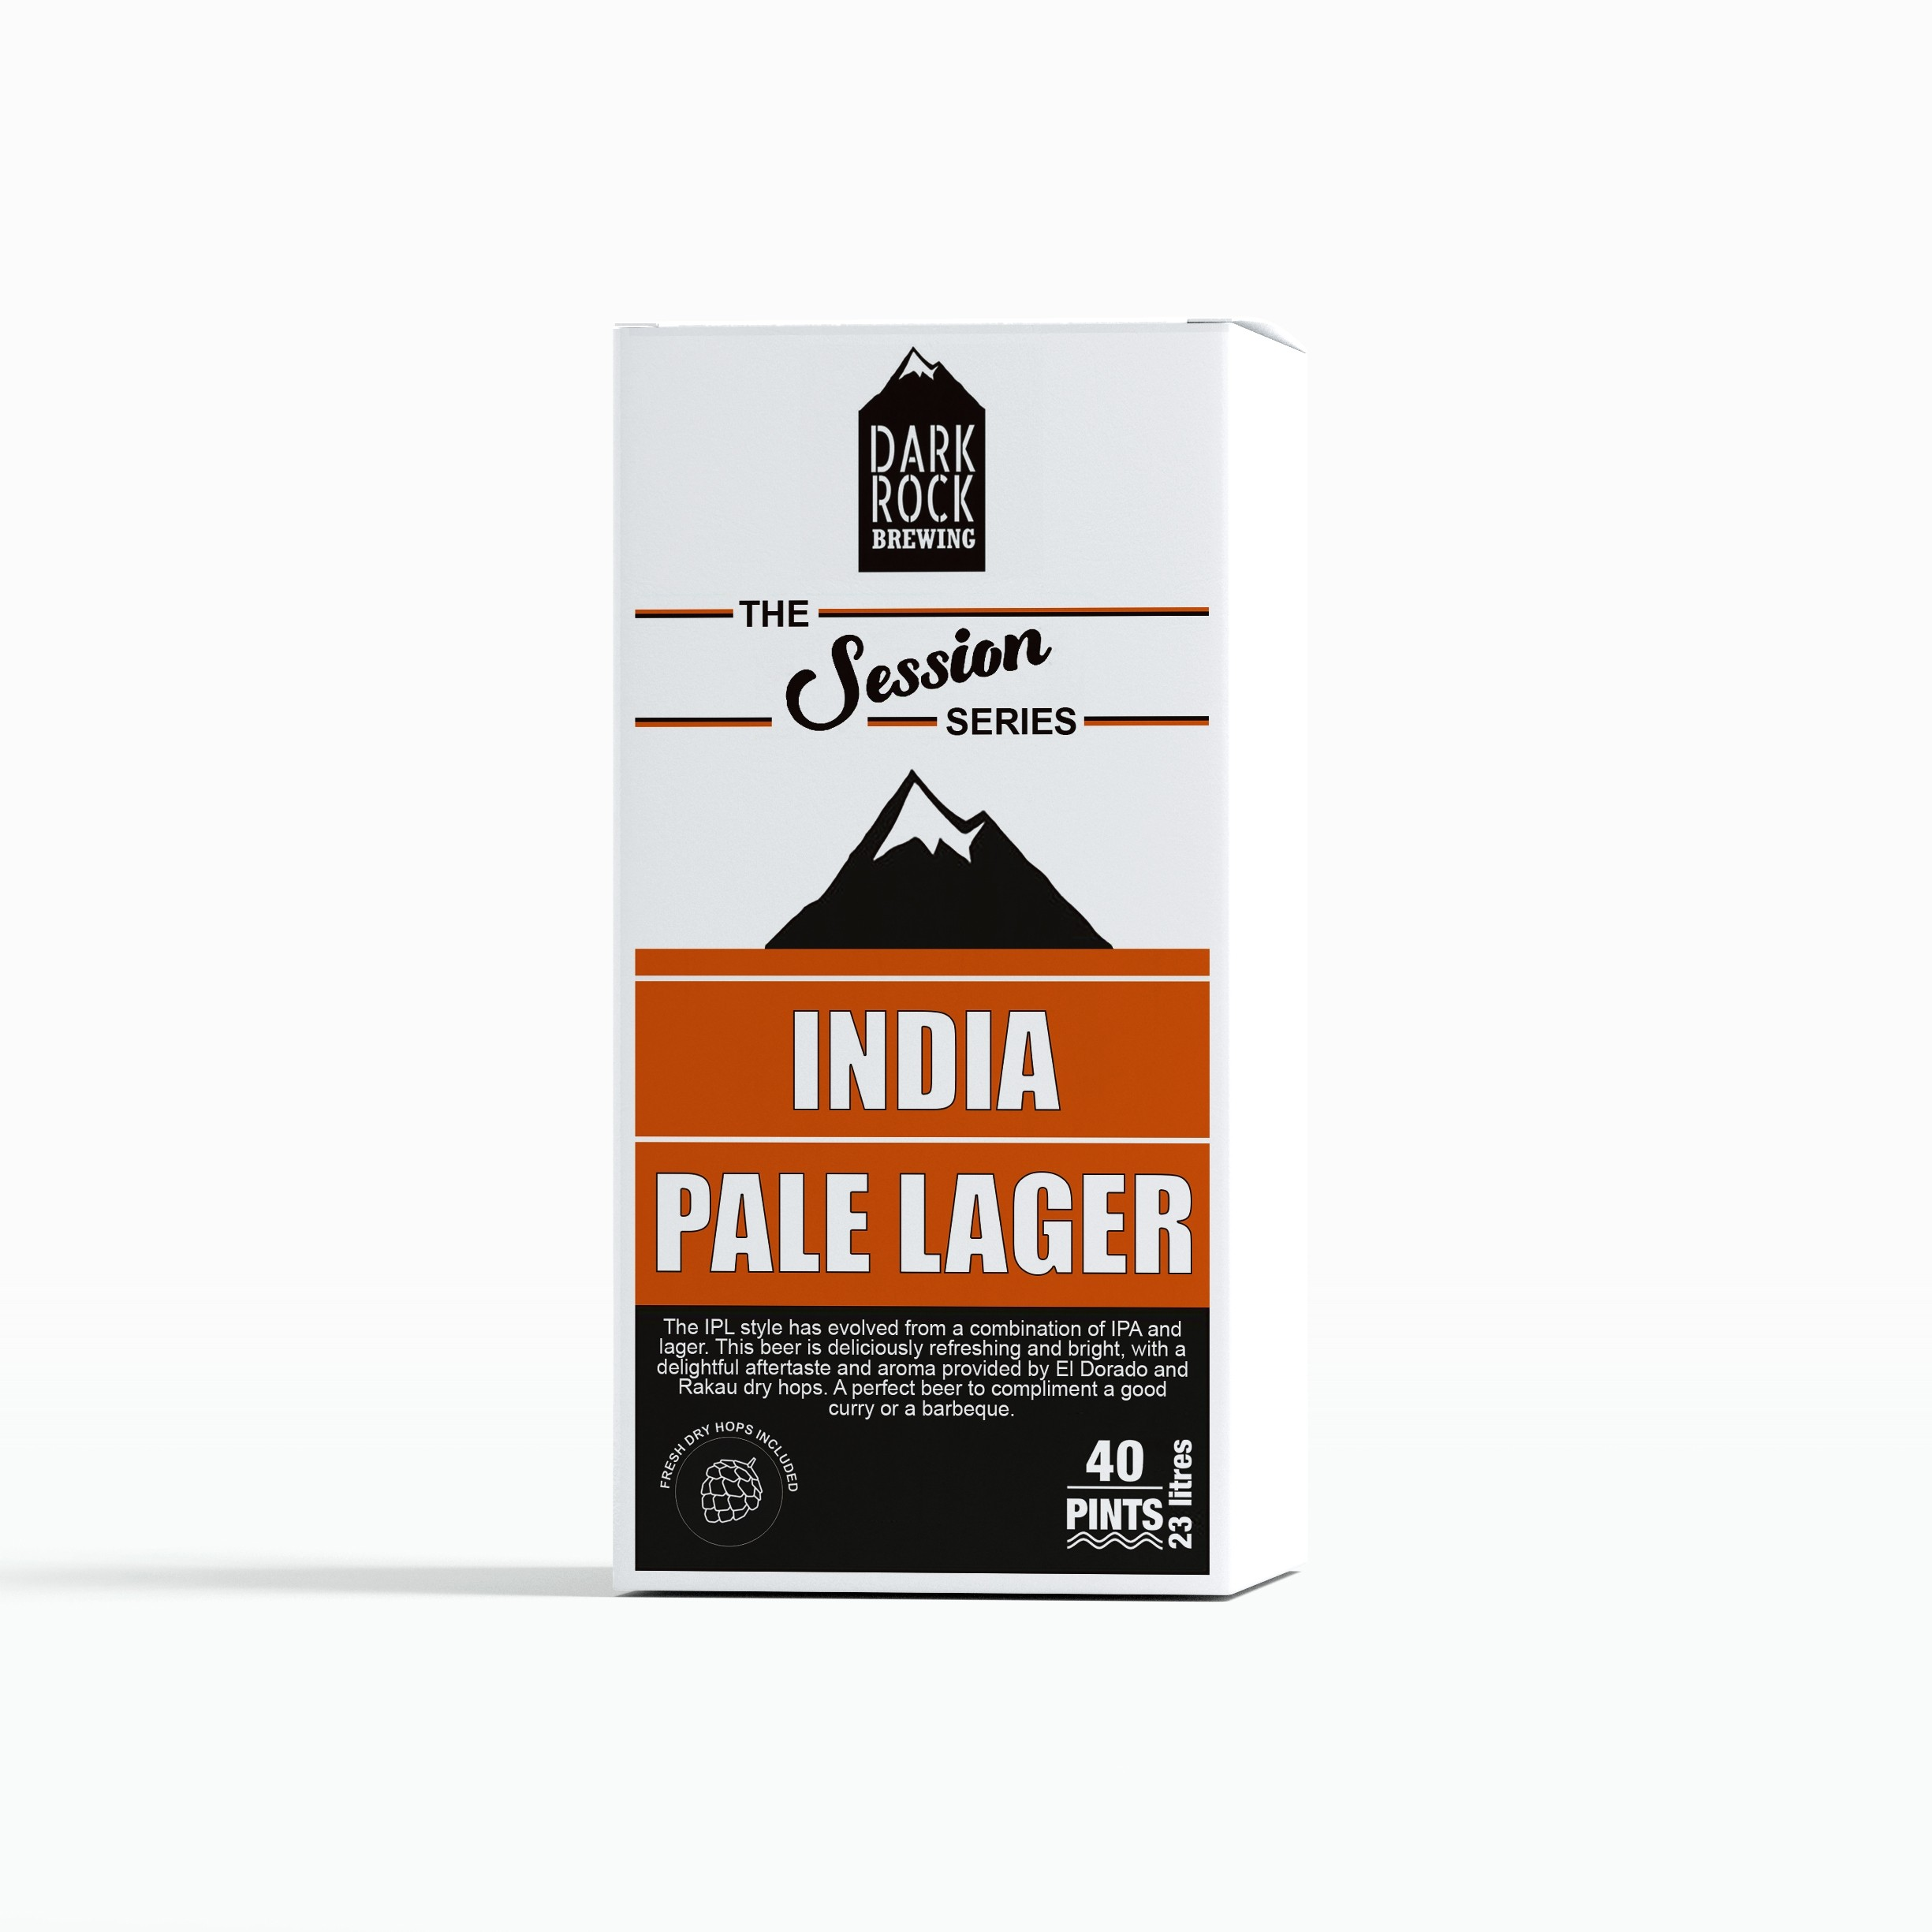 Dark Rock Session Series - India Pale Lager